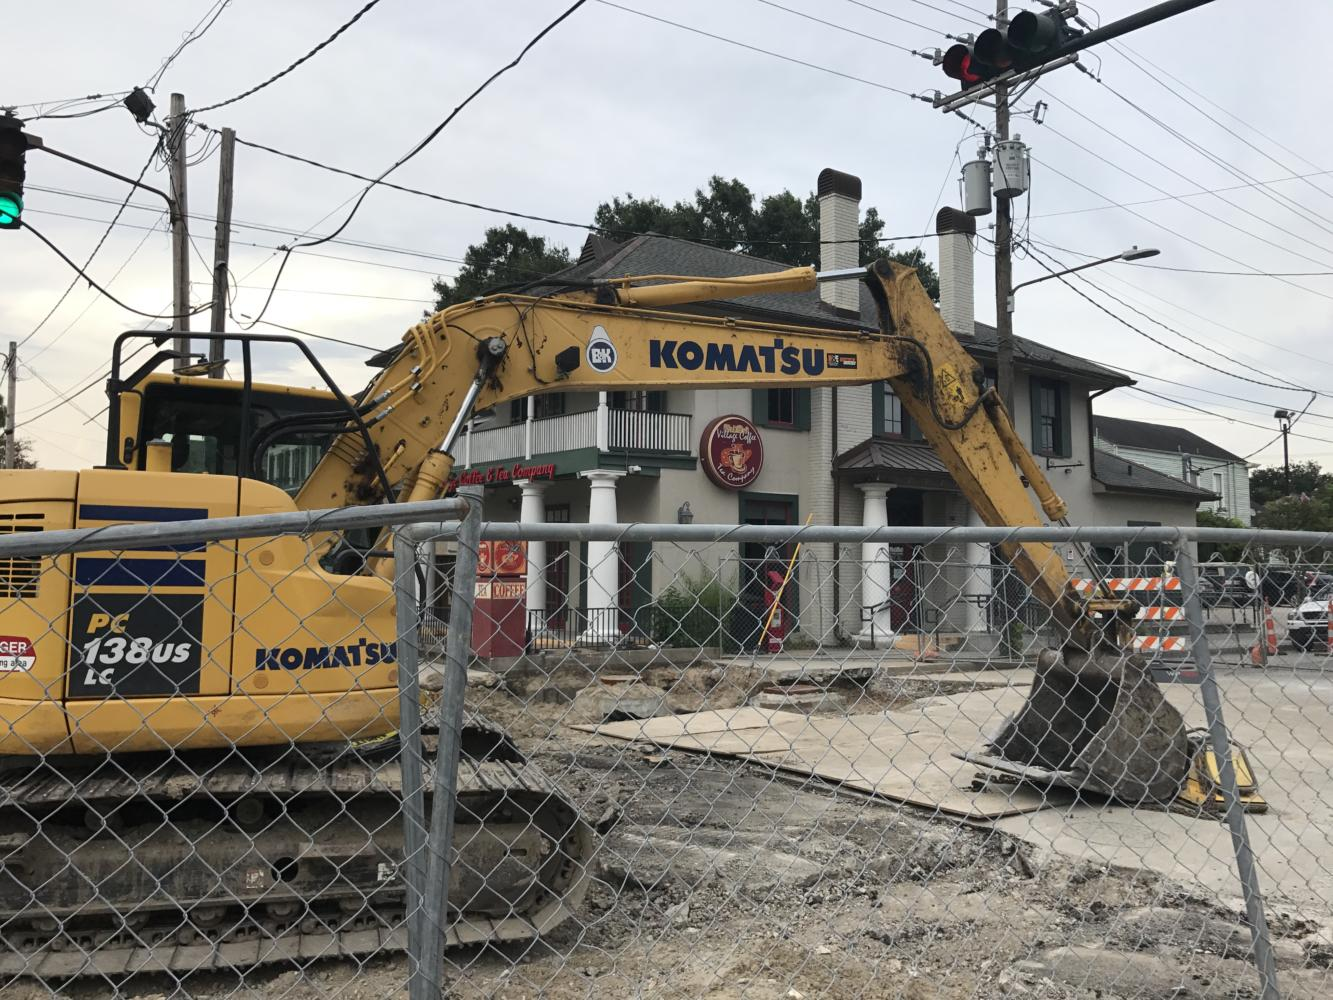 Construction continues along Jefferson Avenue in Uptown New Orleans. The intersection of Jefferson Avenue and Freret Street is expected to be closed for the next three months. Photo credit: Katelyn Fecteau